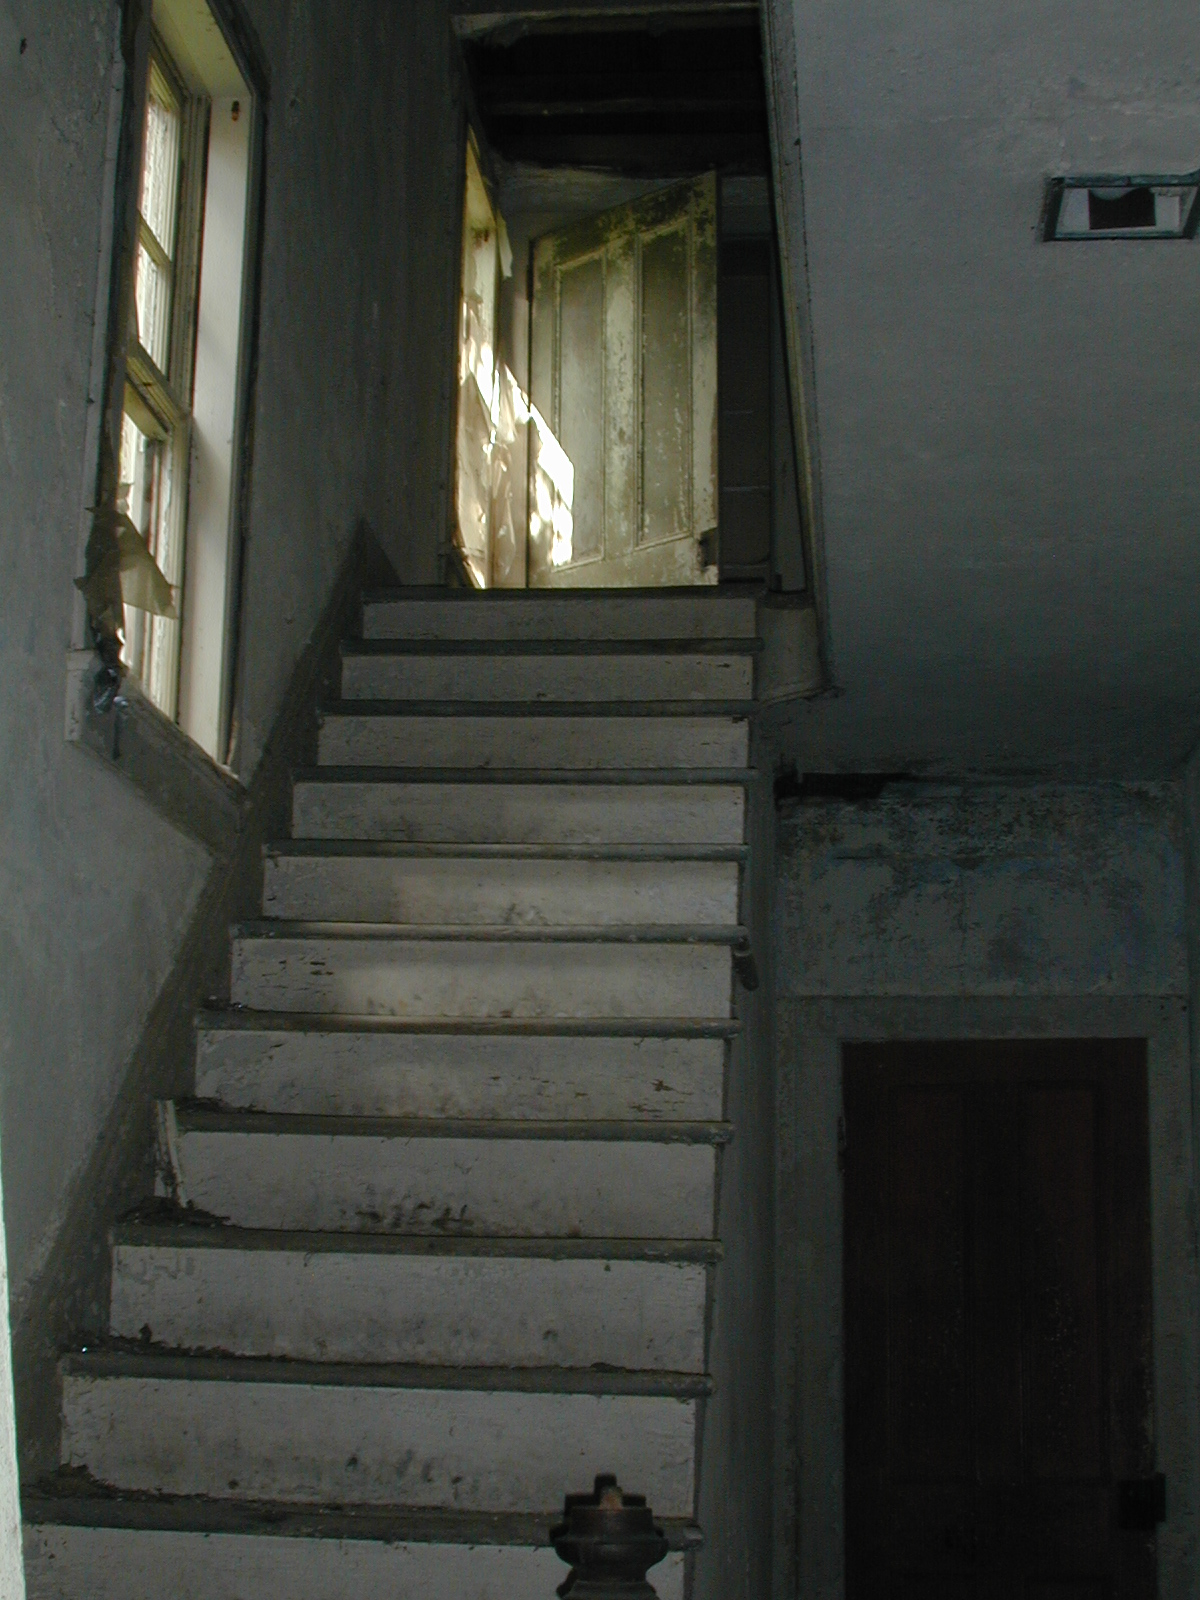 Looking up the stairs in the Depue farmhouse